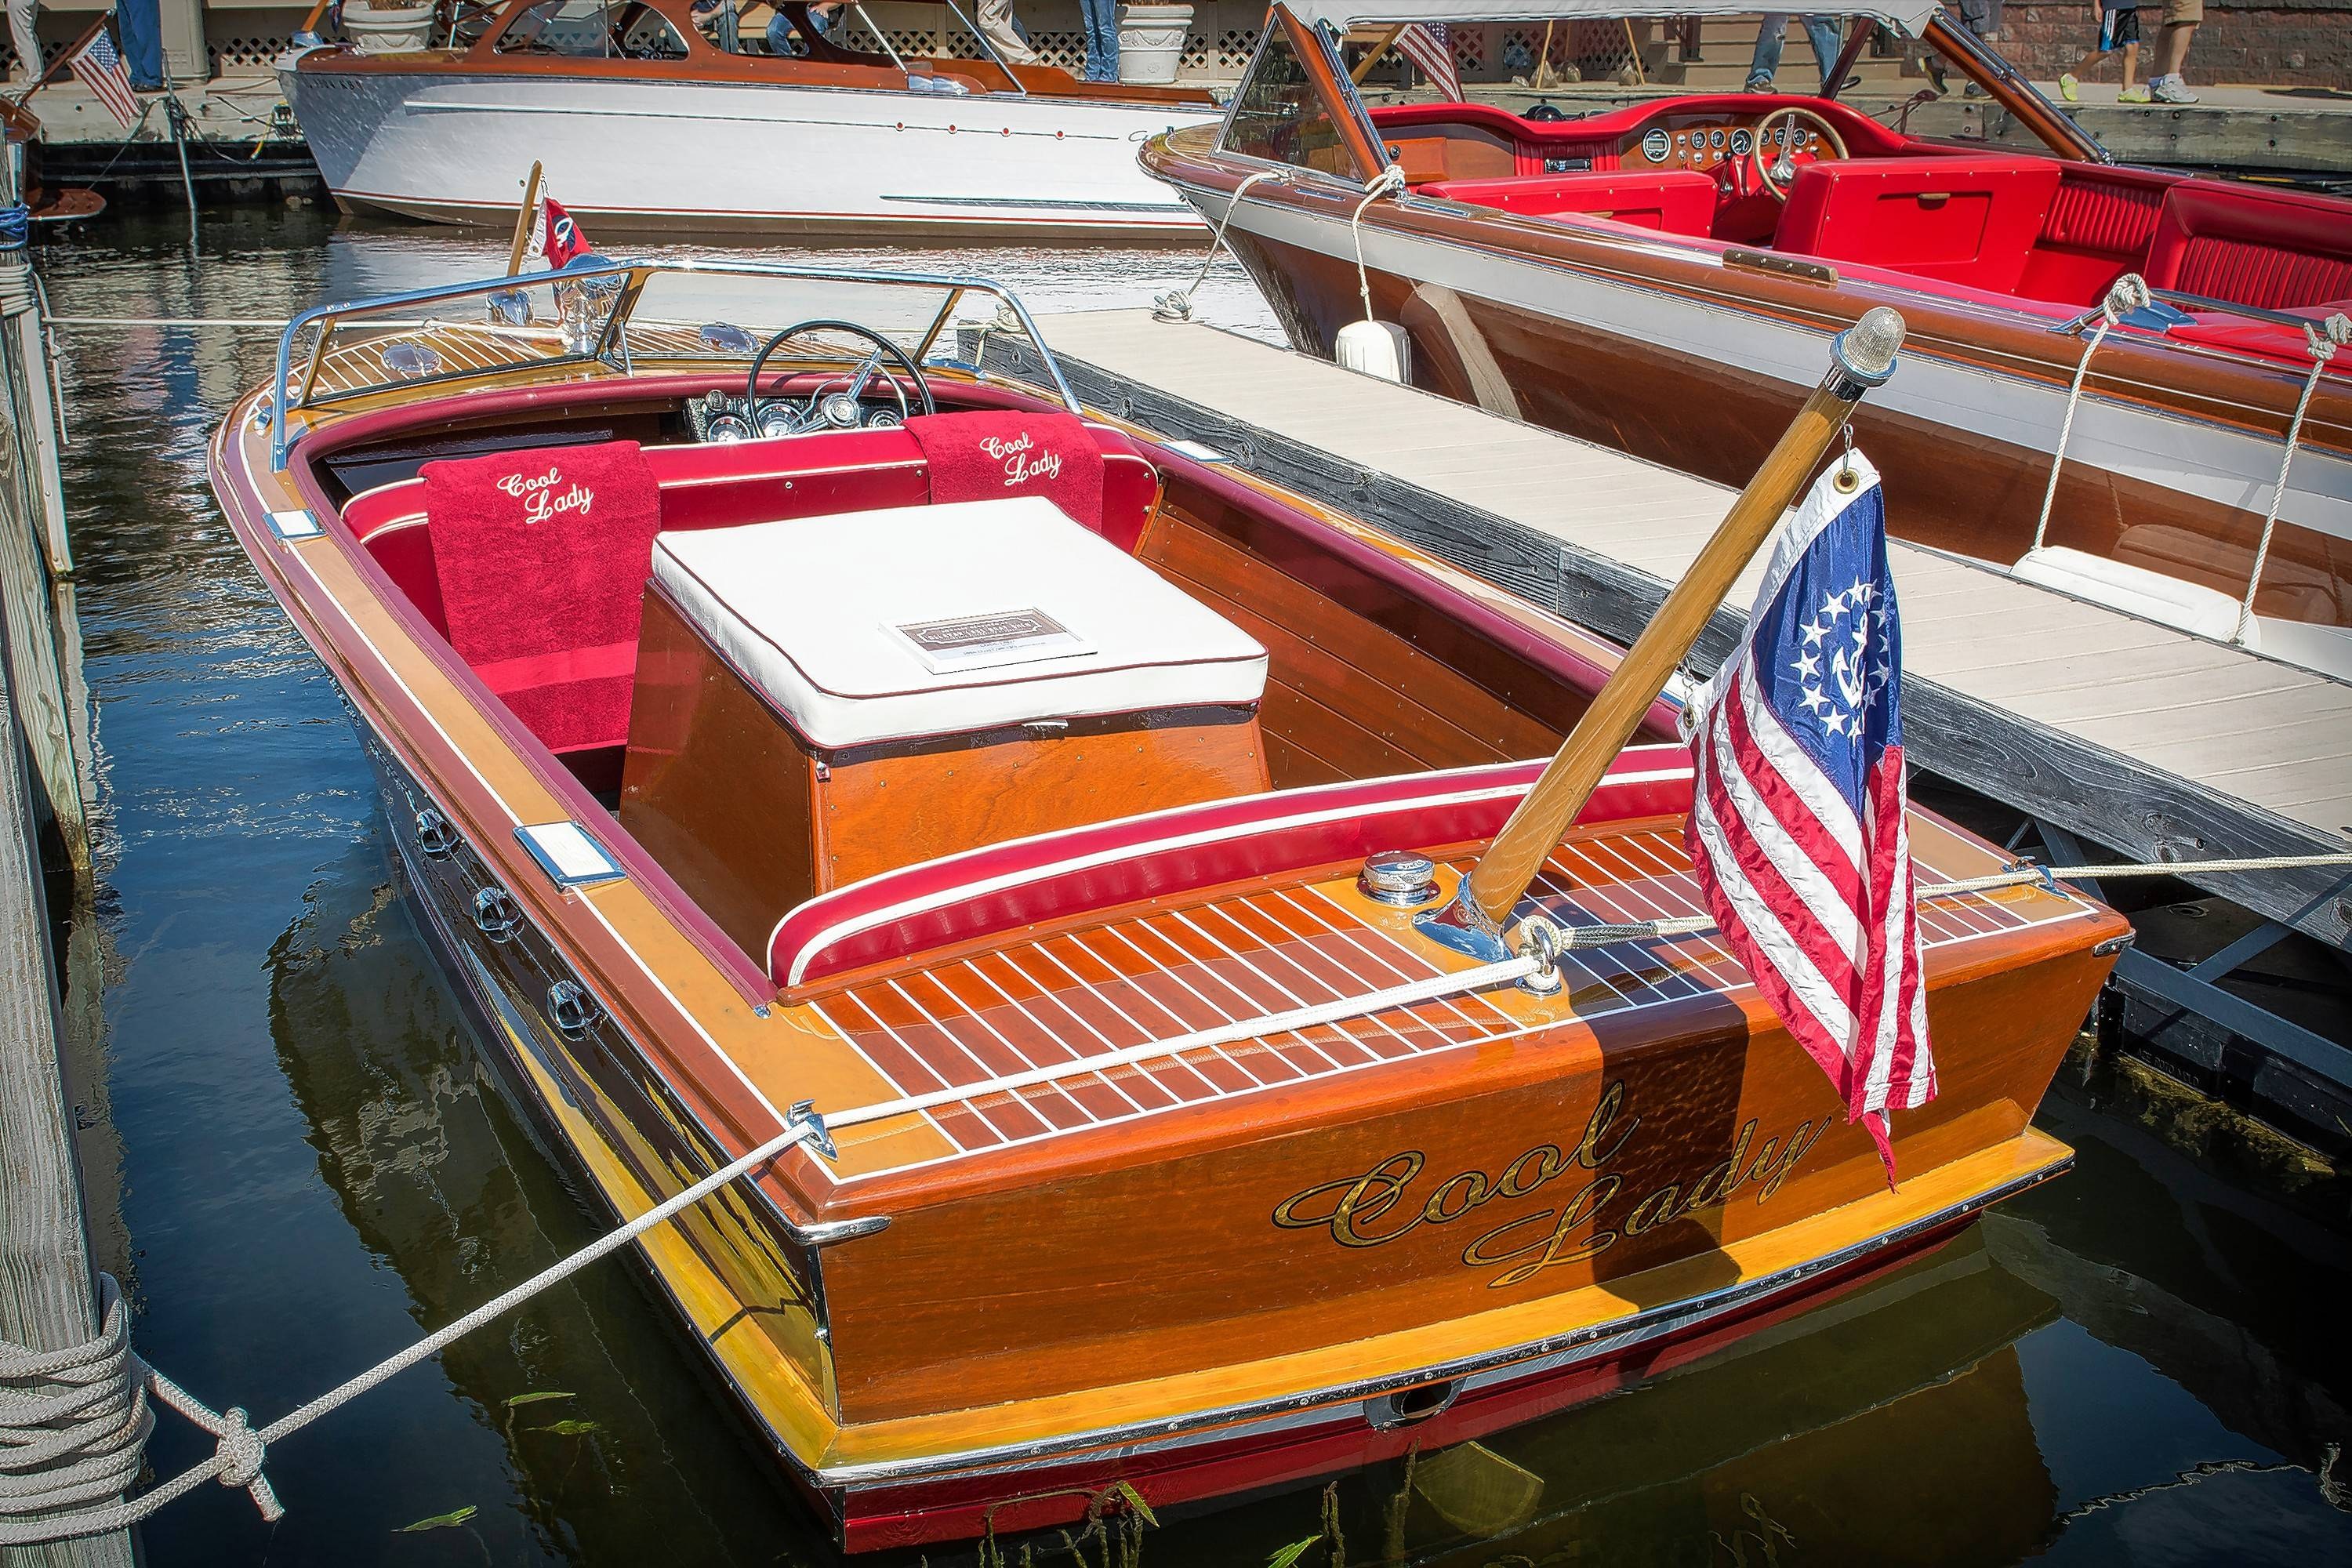 The 1956 Chris-Craft boat is now powered by a V-8 engine built to go under the hood of a Chevrolet Corvette.